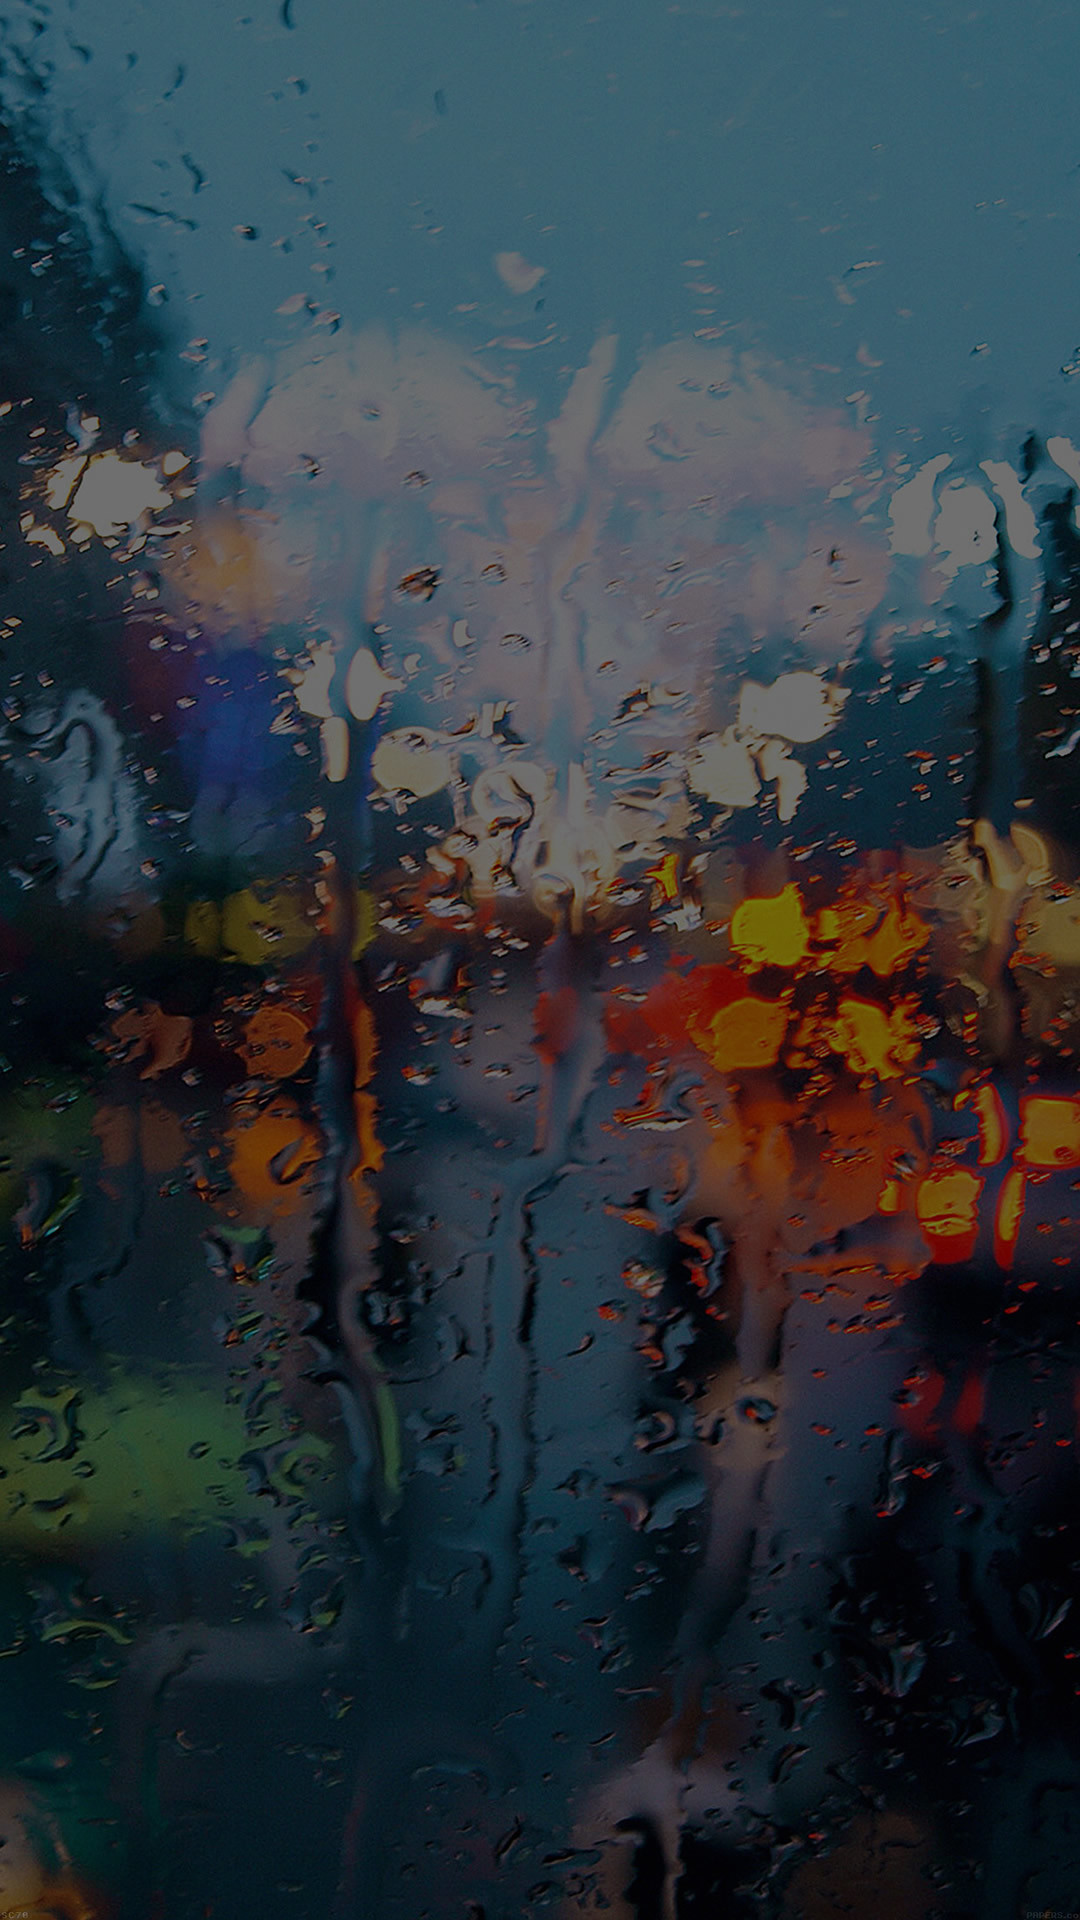 Rainy Day Wallpapers One HD Wallpaper Pictures Backgrounds FREE